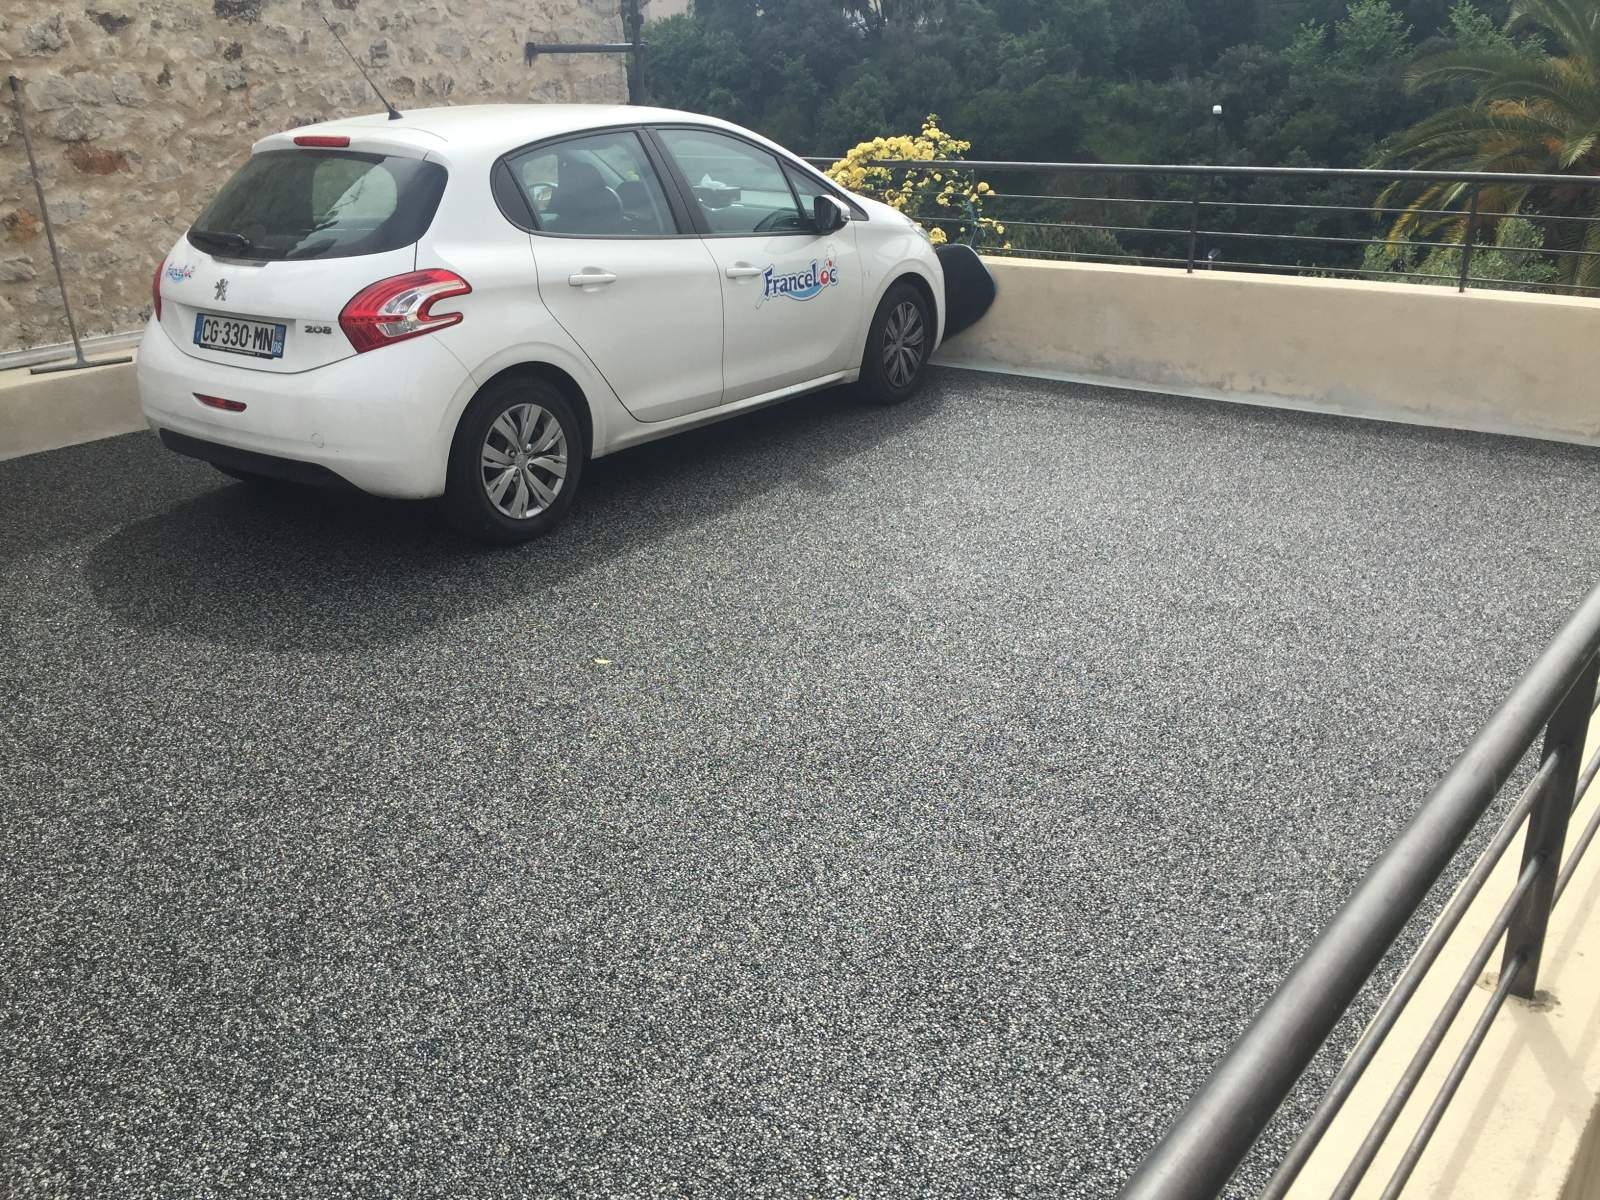 Sur cannes parking v hicule en agr gats de marbre et for Revetement pour allee de garage